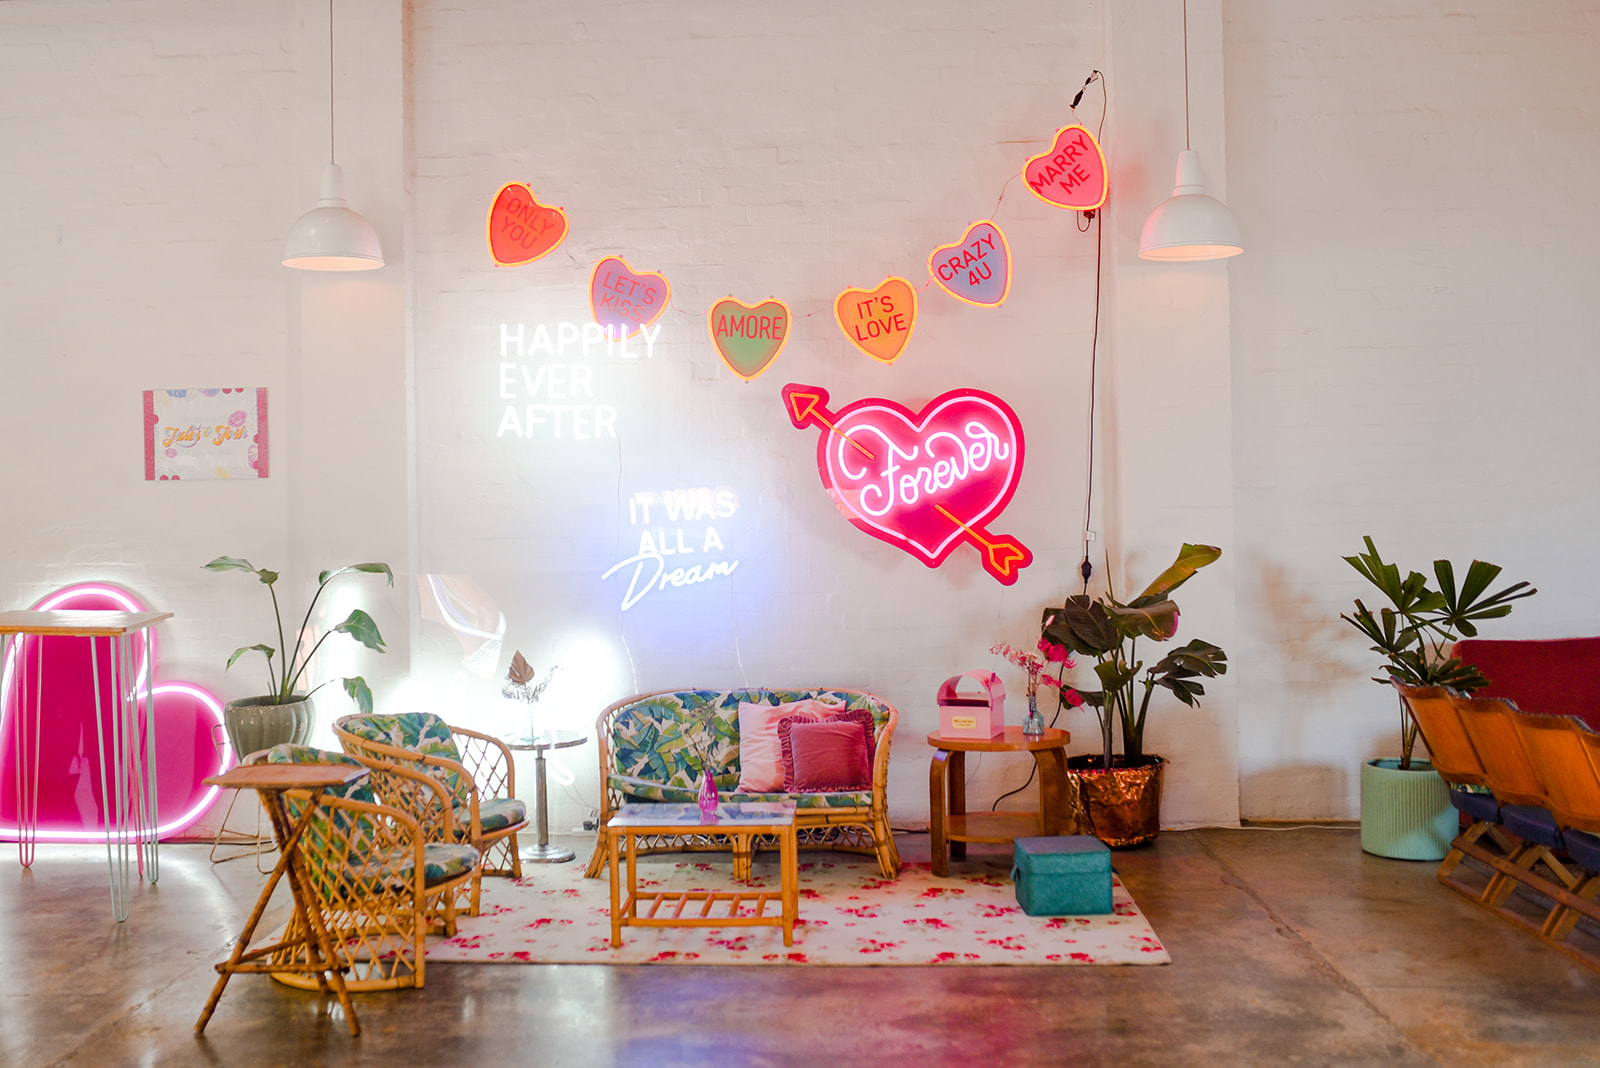 Neon signs and lights hanging on white wall as a backdrop to eclectic vintage lounge area